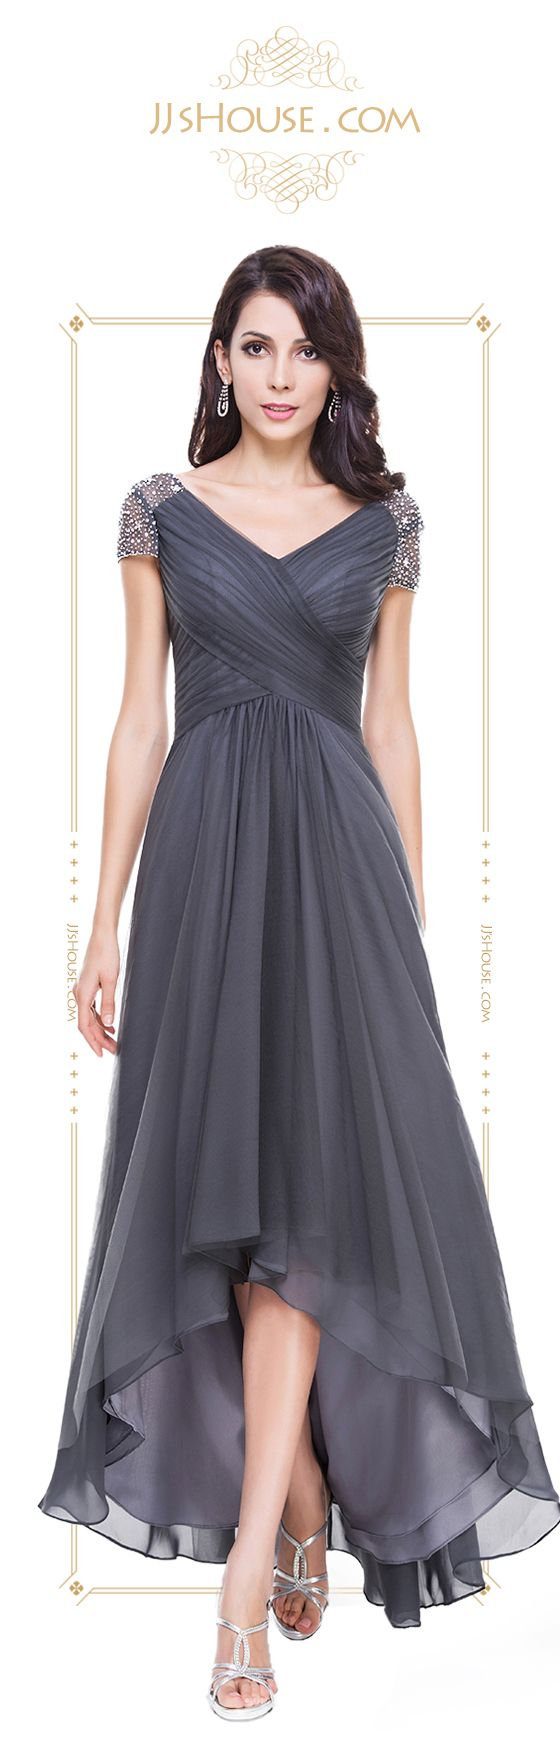 653 best images about JJsHouse Party Dresses -Evening/Cocktail on ...